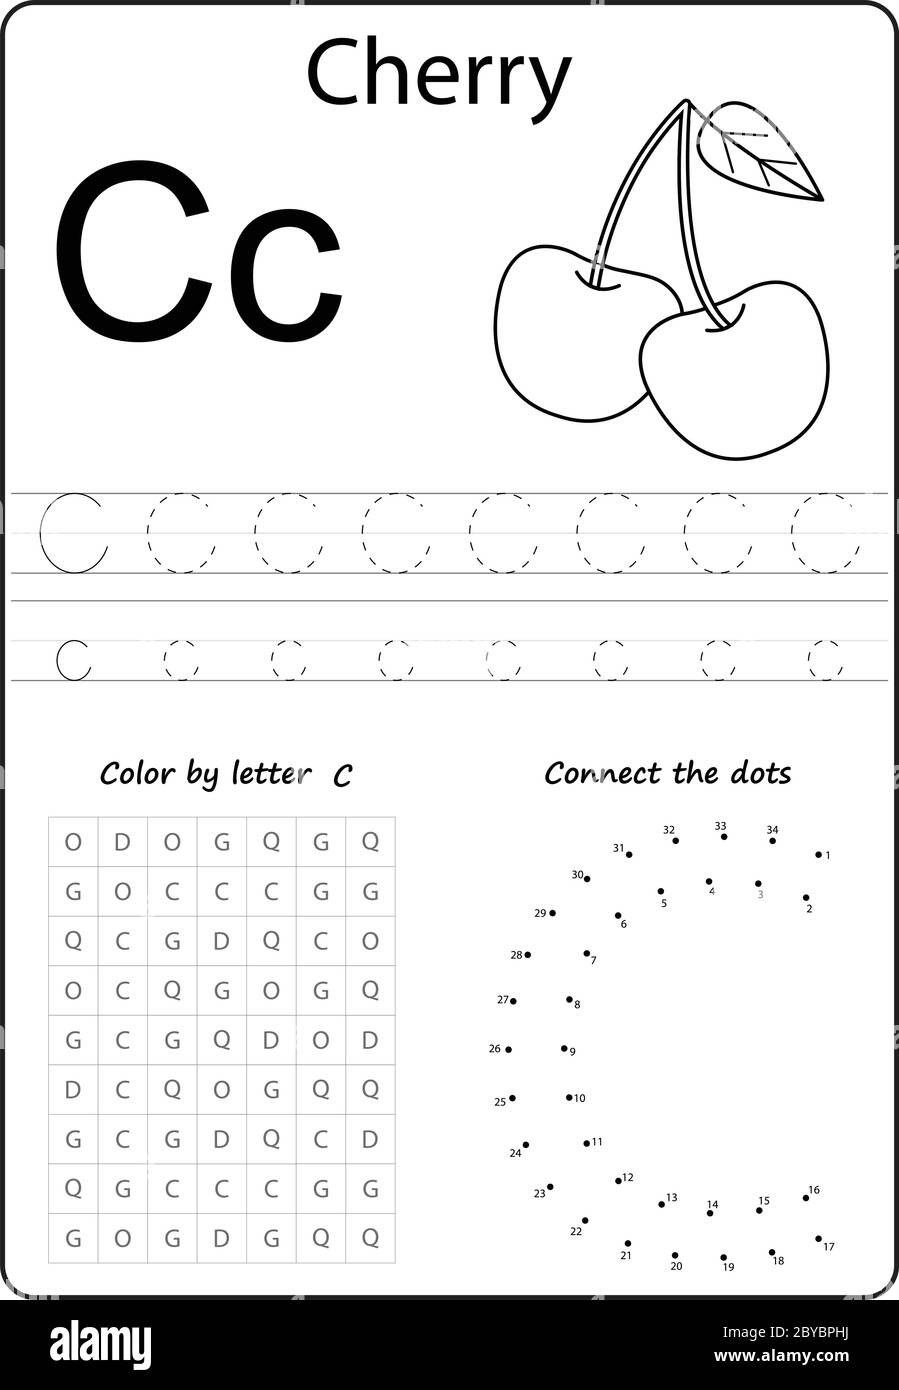 Letter C Alphabet Letter Worksheet Task For Kids Learning Letters Stock Vector Image Art Alamy